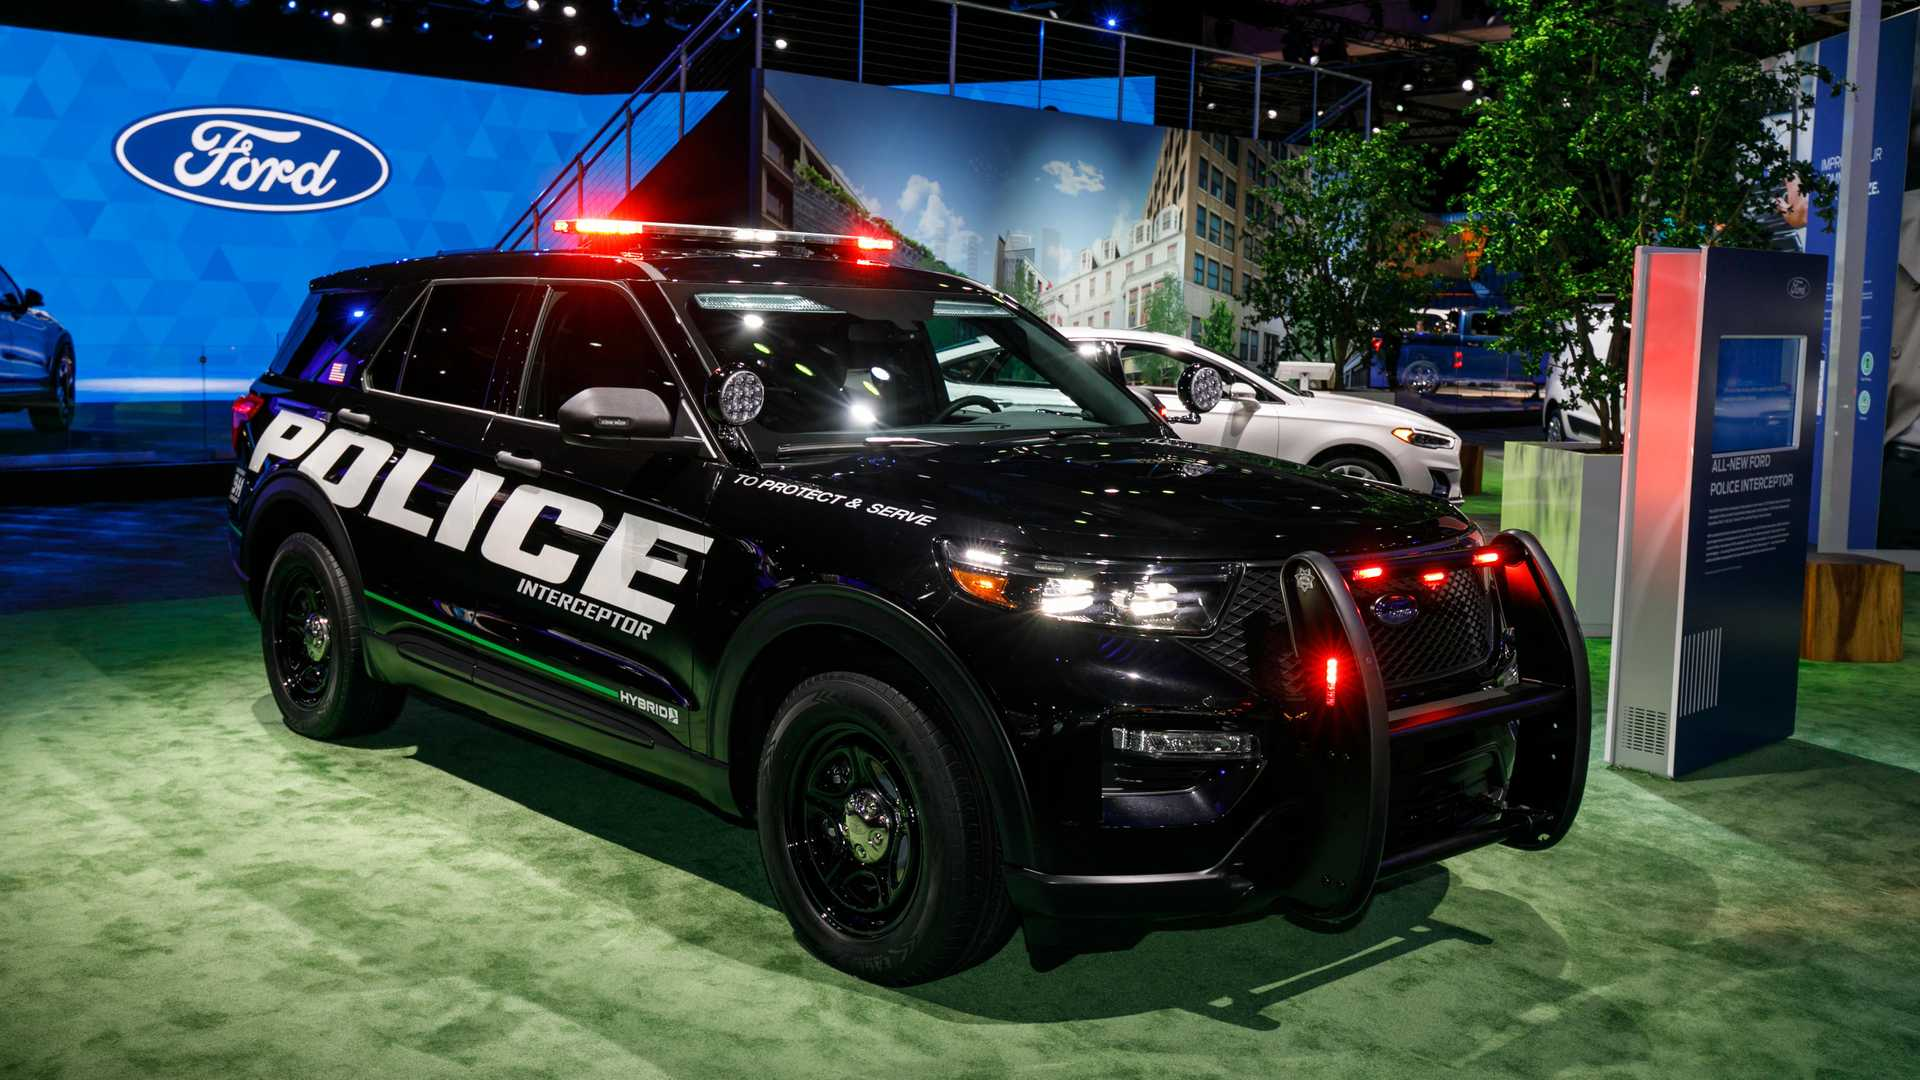 86 Gallery of 2020 Ford Police Interceptor Price for 2020 Ford Police Interceptor